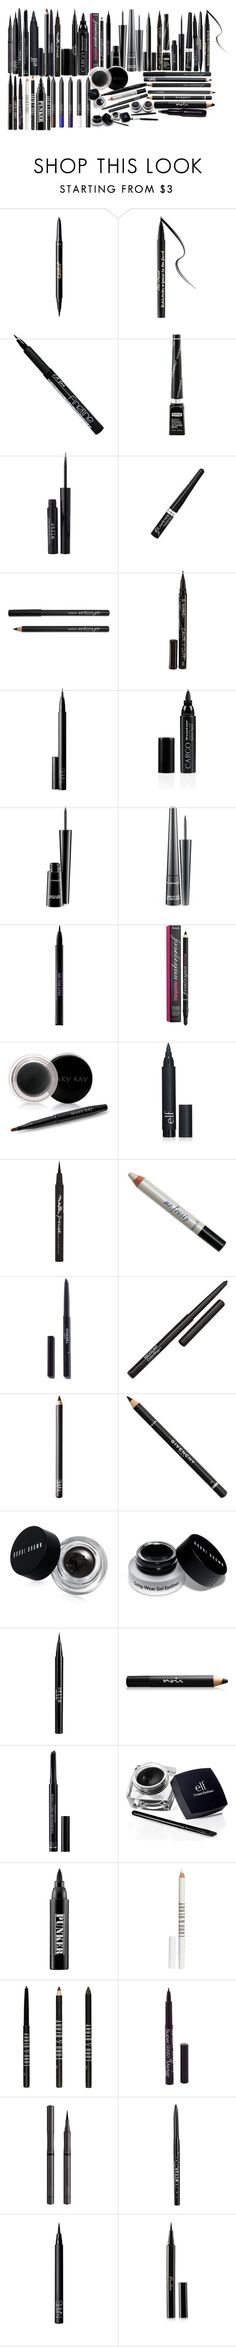 """Teen Wolf: Eyeliner"" by grandmasfood ❤ liked on Polyvore featuring beauty, tarte, Too Faced Cosmetics, Isadora, Stila, Rimmel, Smith & Cult, NARS Cosmetics, CARGO and MAC Cosmetics"